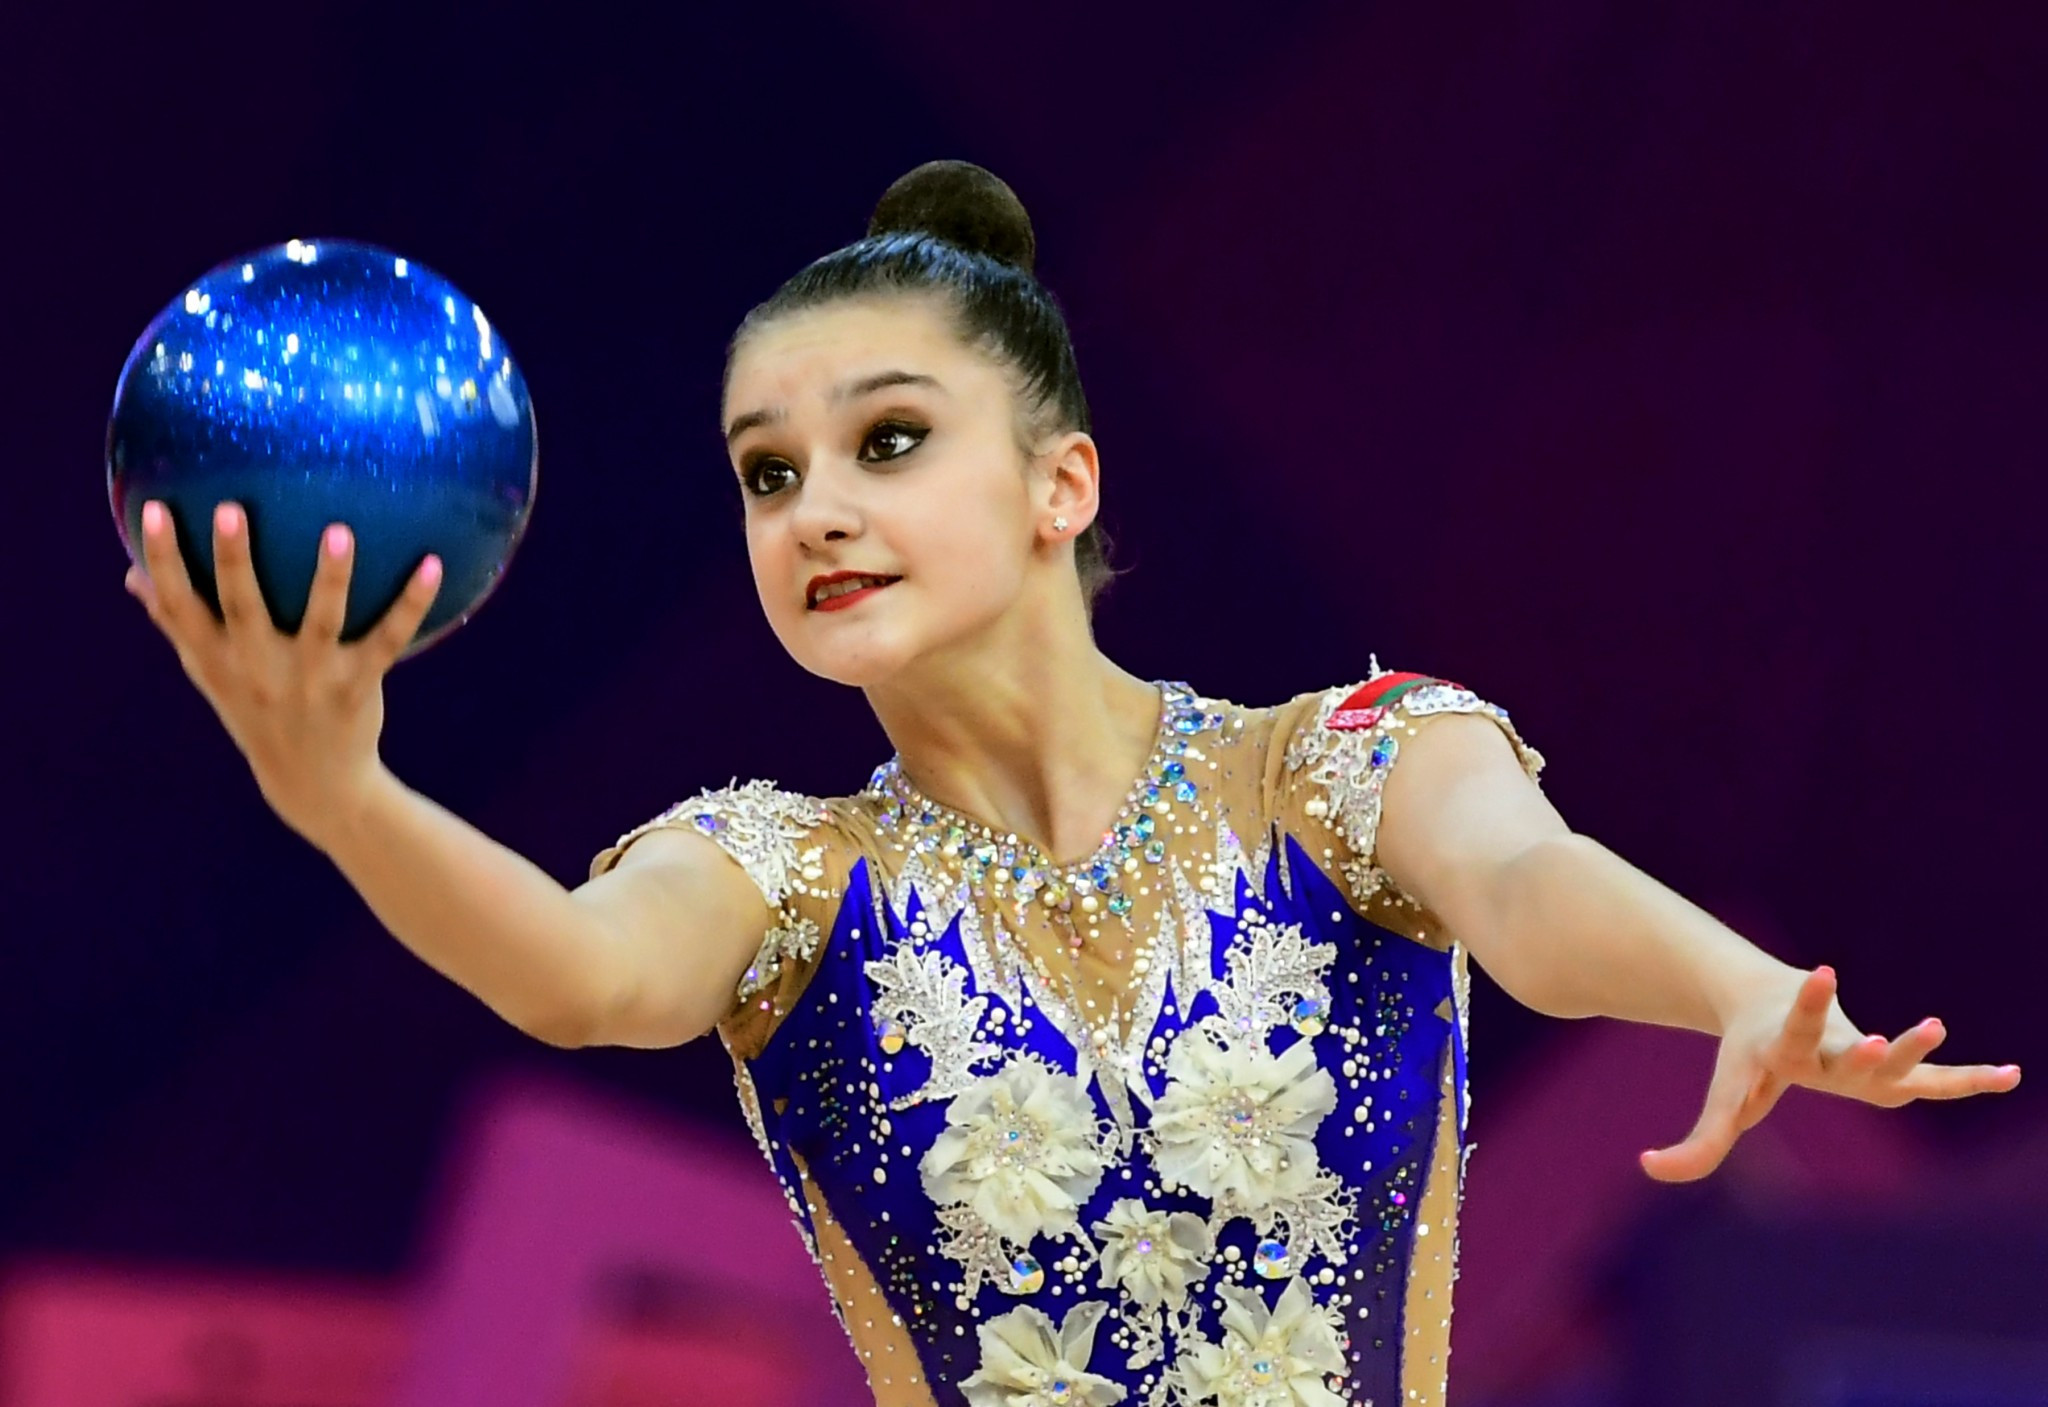 Alina Harnasko is another gymnast set to feature on home soil in Belarus ©Getty Images